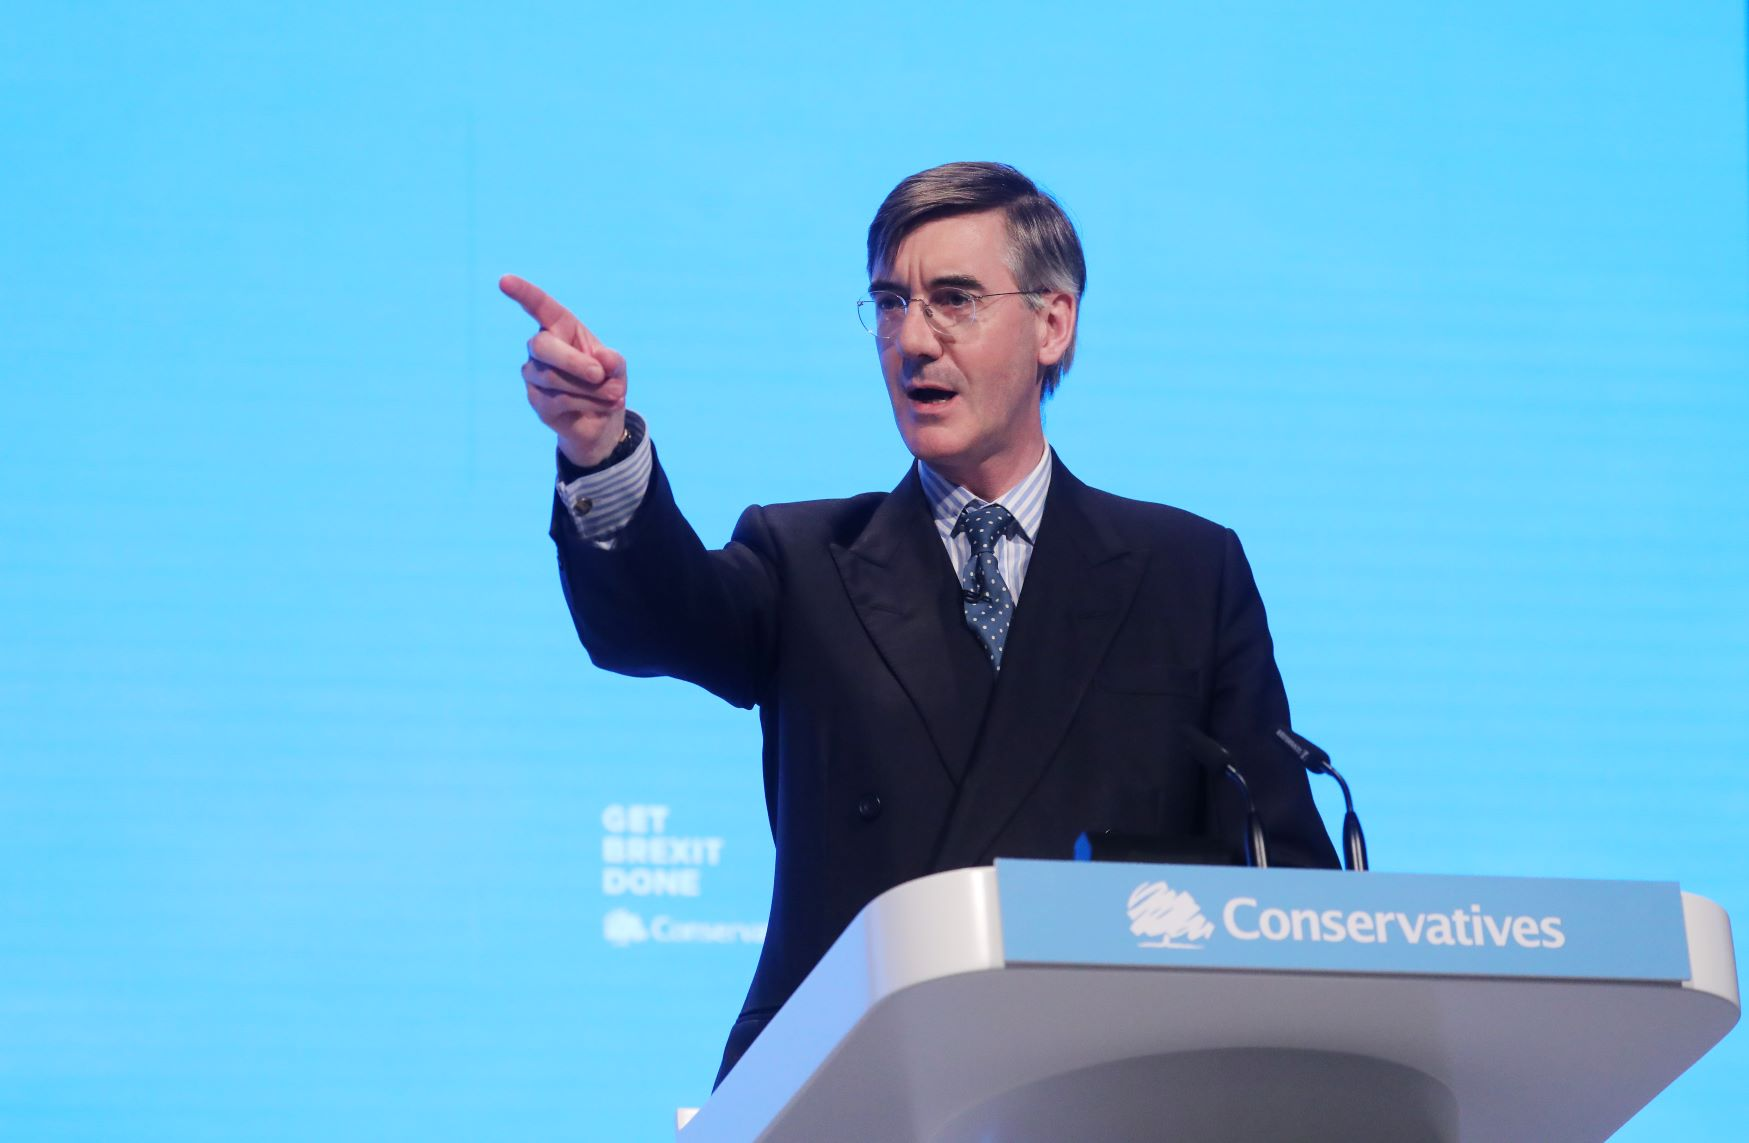 Leader of the House of Commons Jacob Rees-Mogg delivers a speech during the